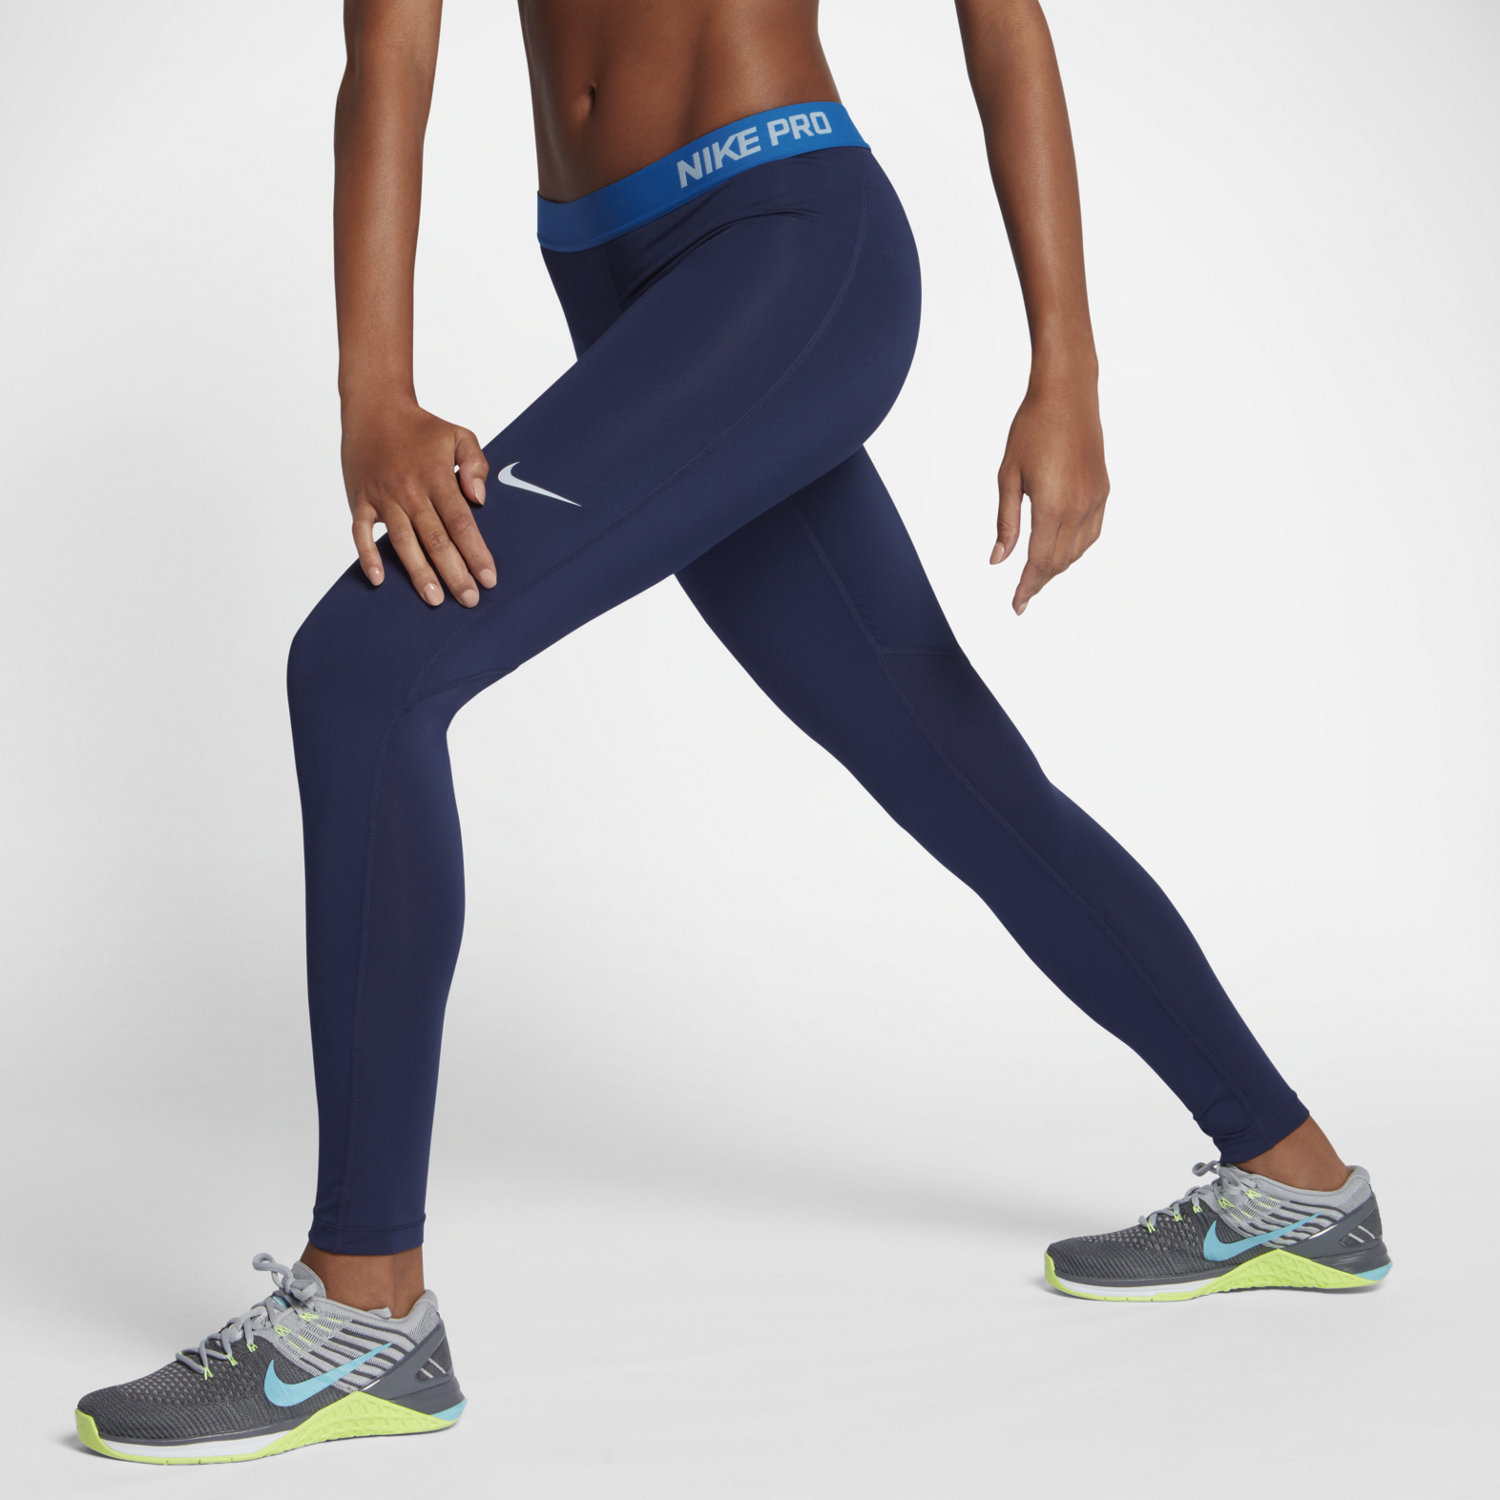 nike tights nike pro womenu0027s 28 KRKSOGX